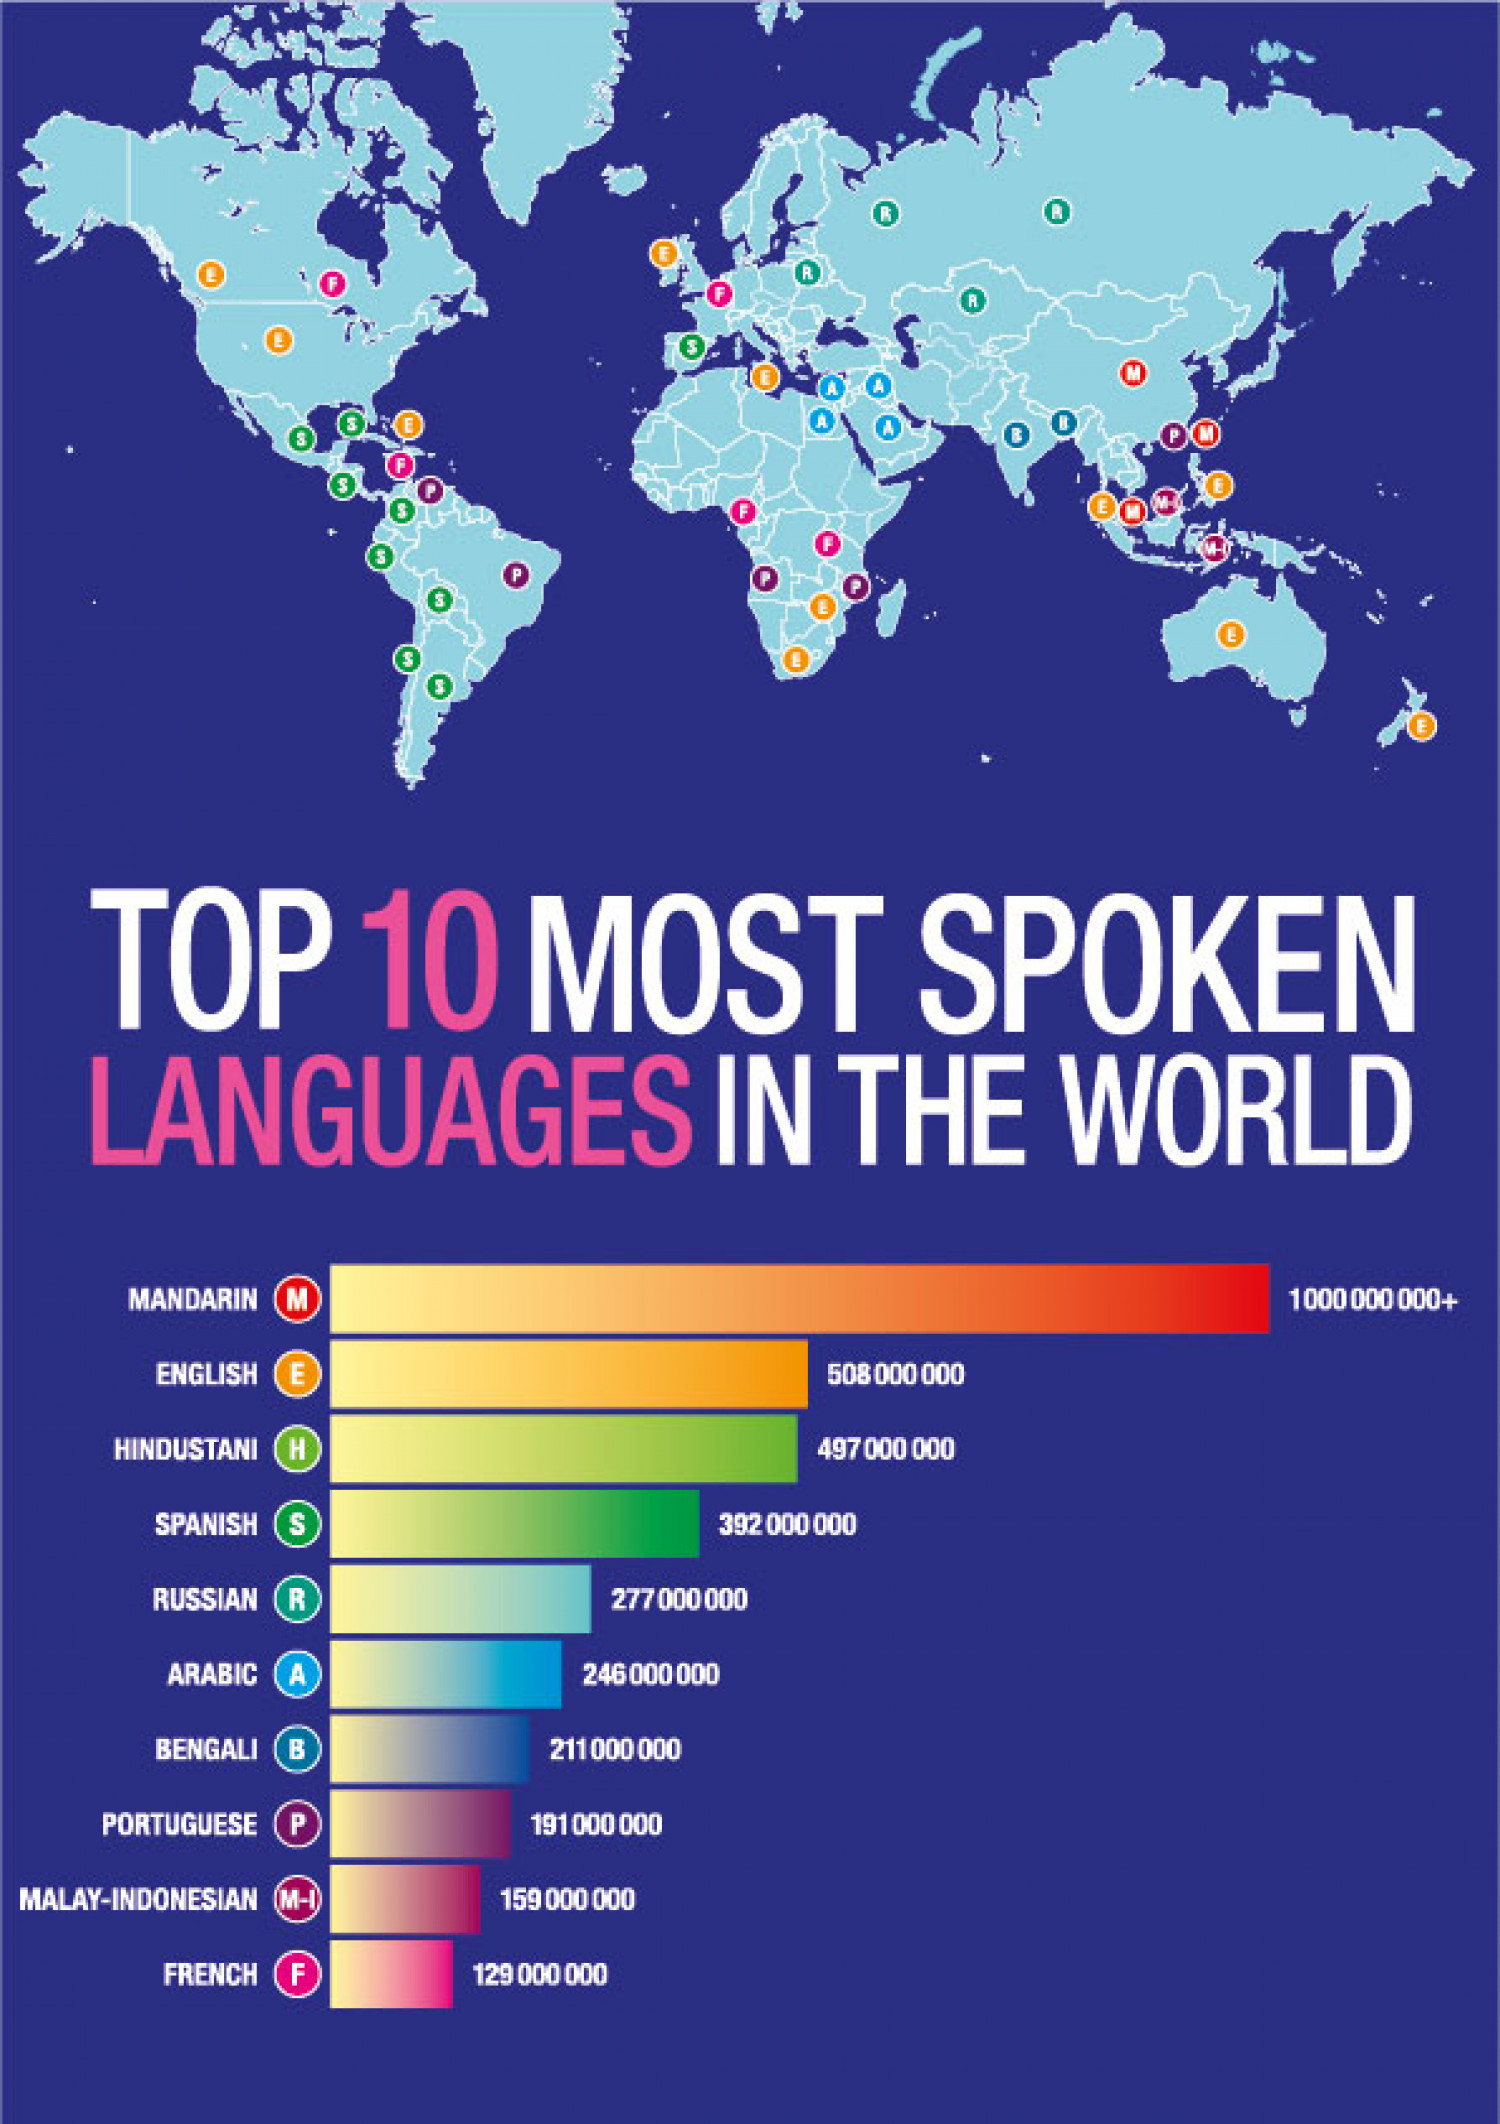 Top Languages Visually - Top ten languages in the world